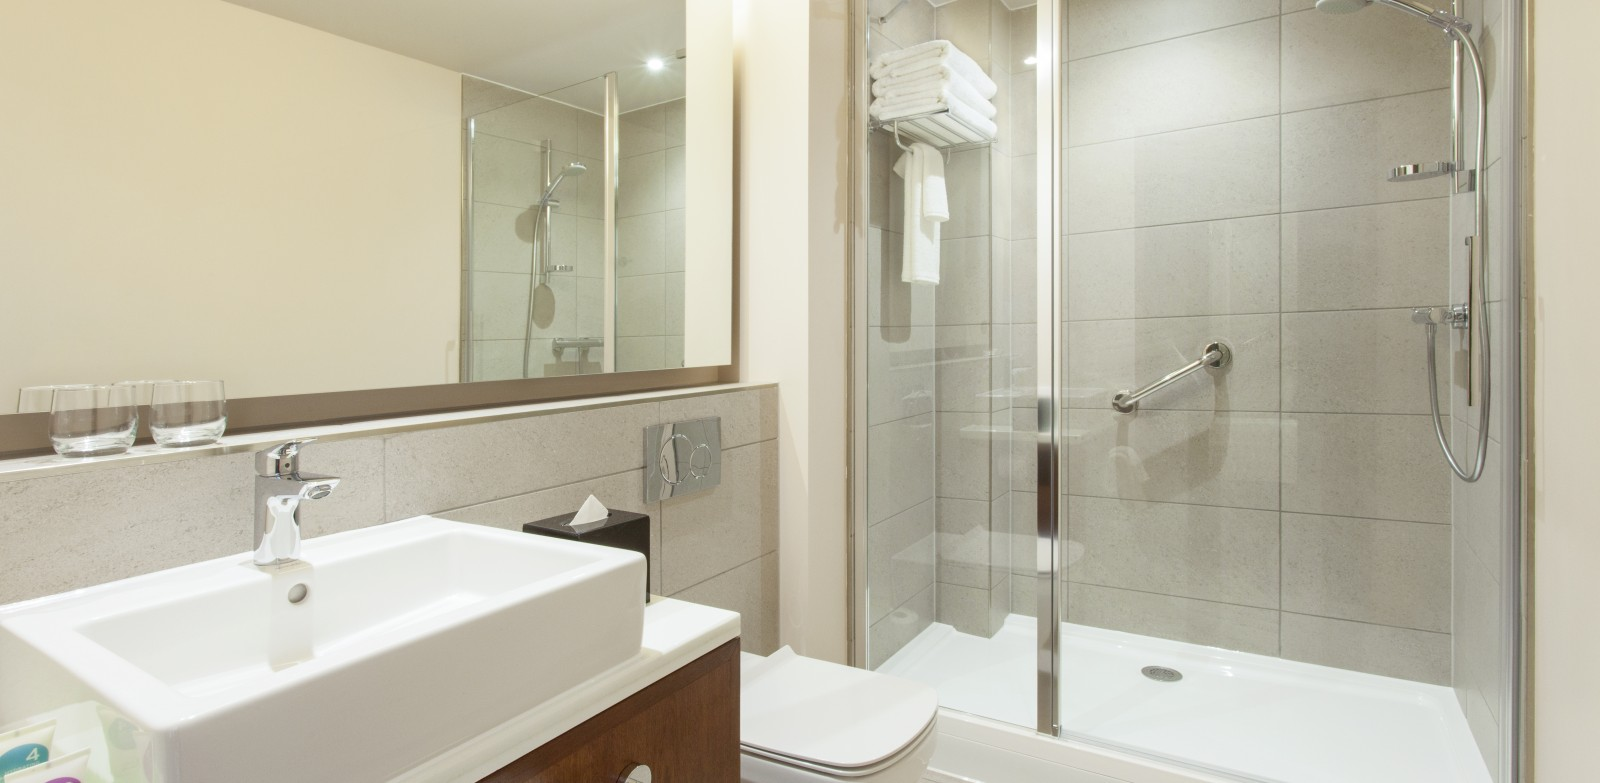 7-HyattPlace1009Bathroom_Southall - Juttla Architects